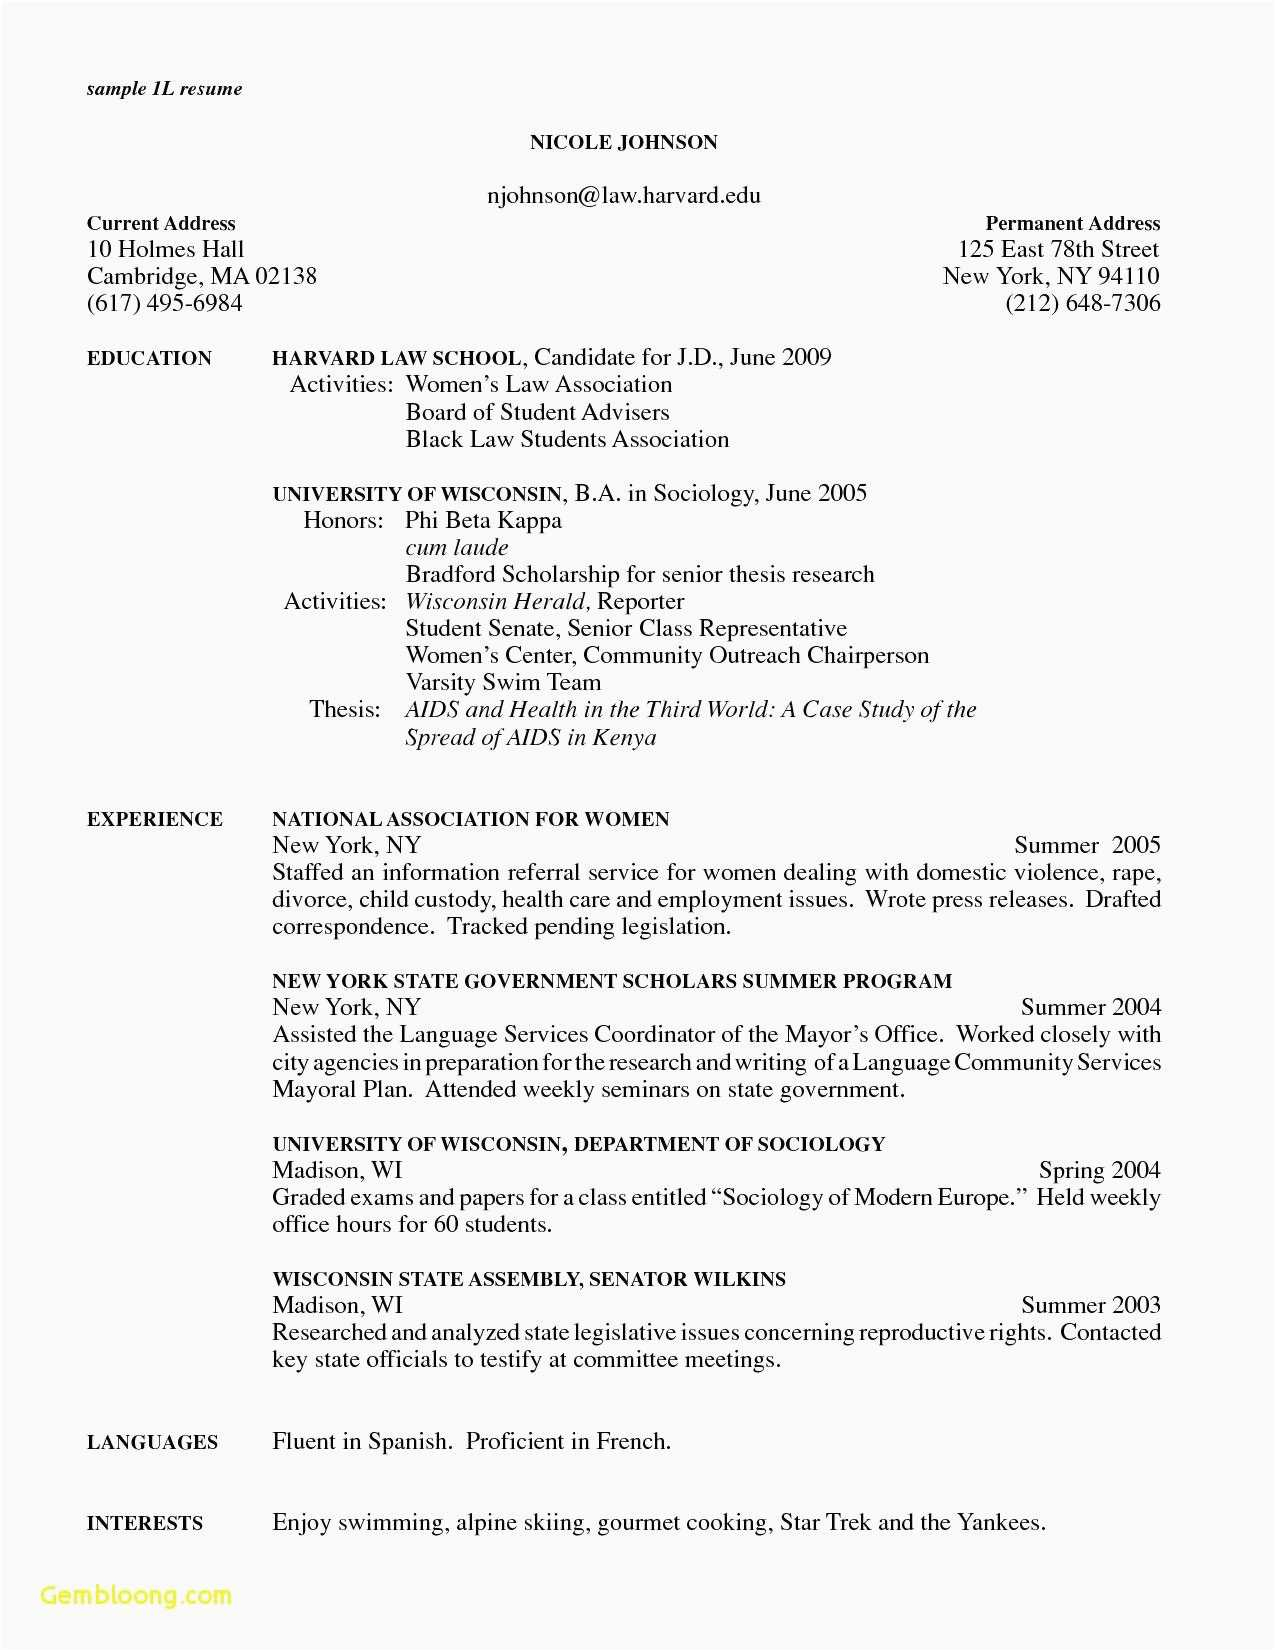 attorney resume template example-Free Legal Resume Template Best Law Student Resume Template Best Resume Examples 0d Simple 7-c